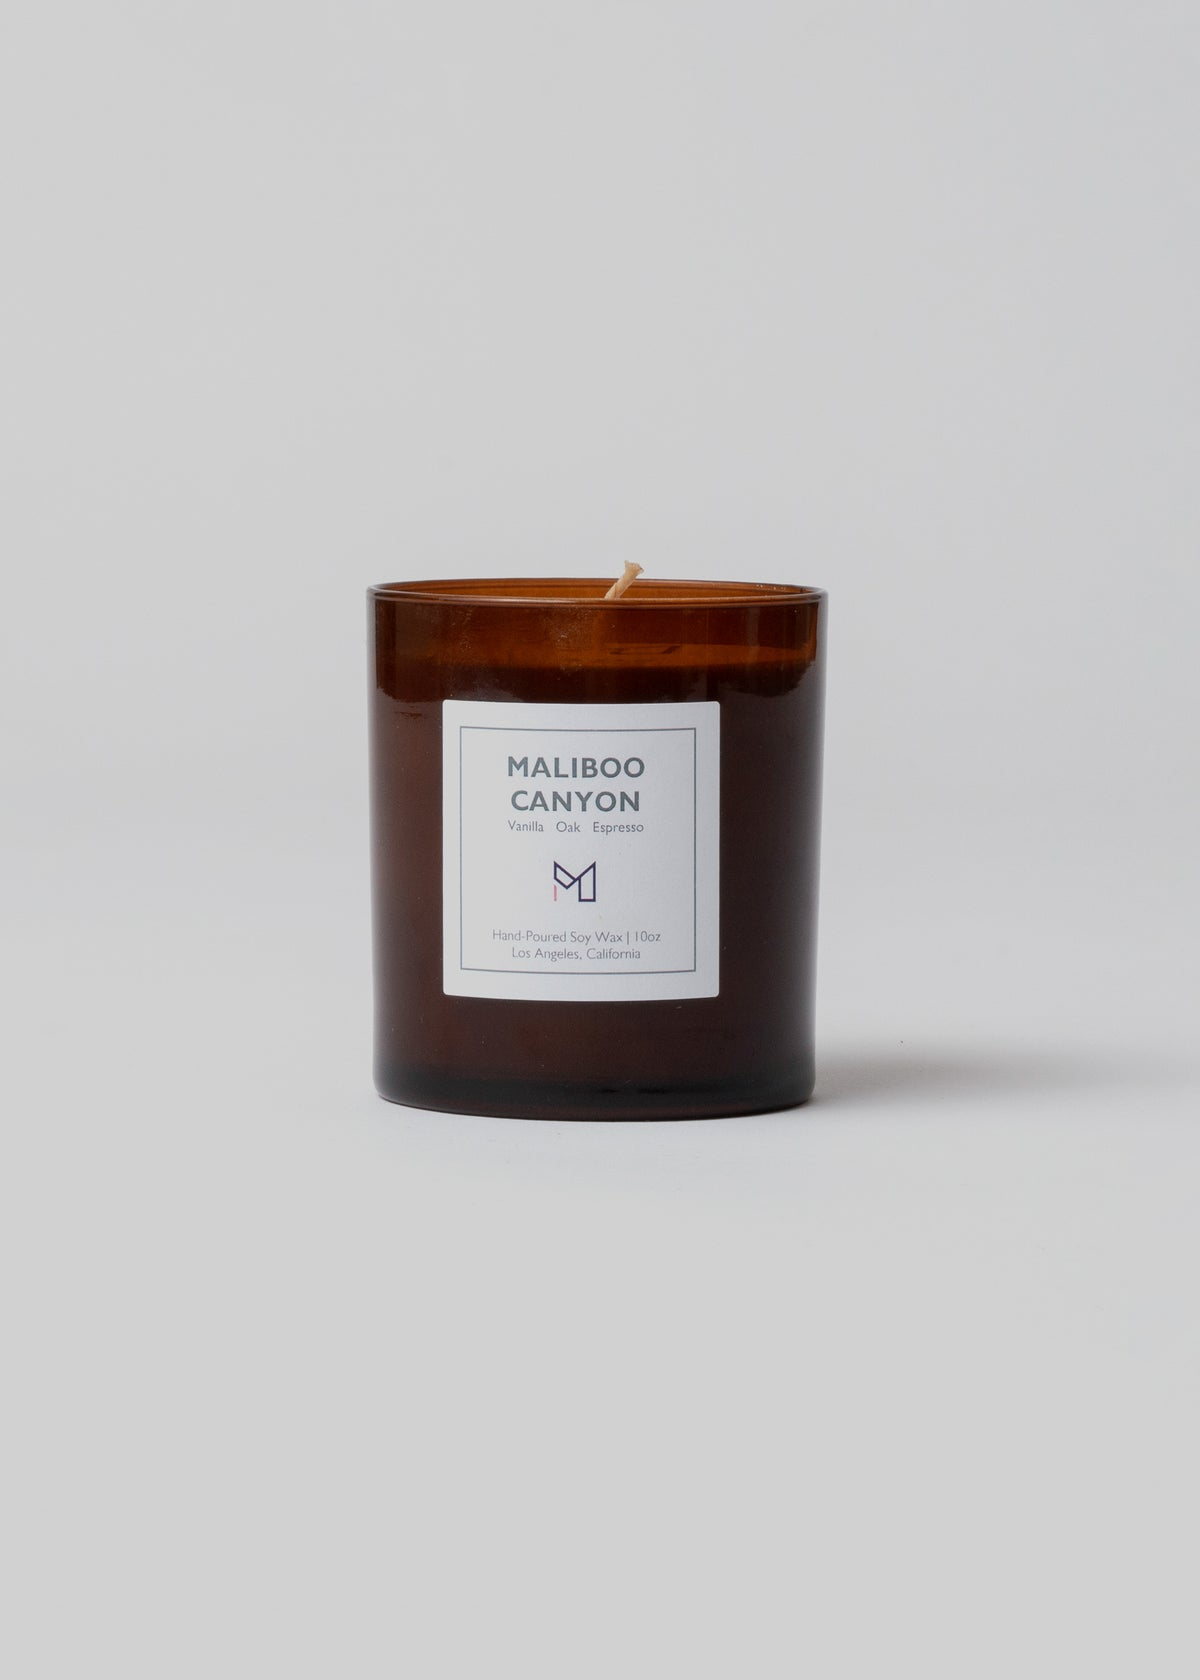 Maliboo Canyon Candle